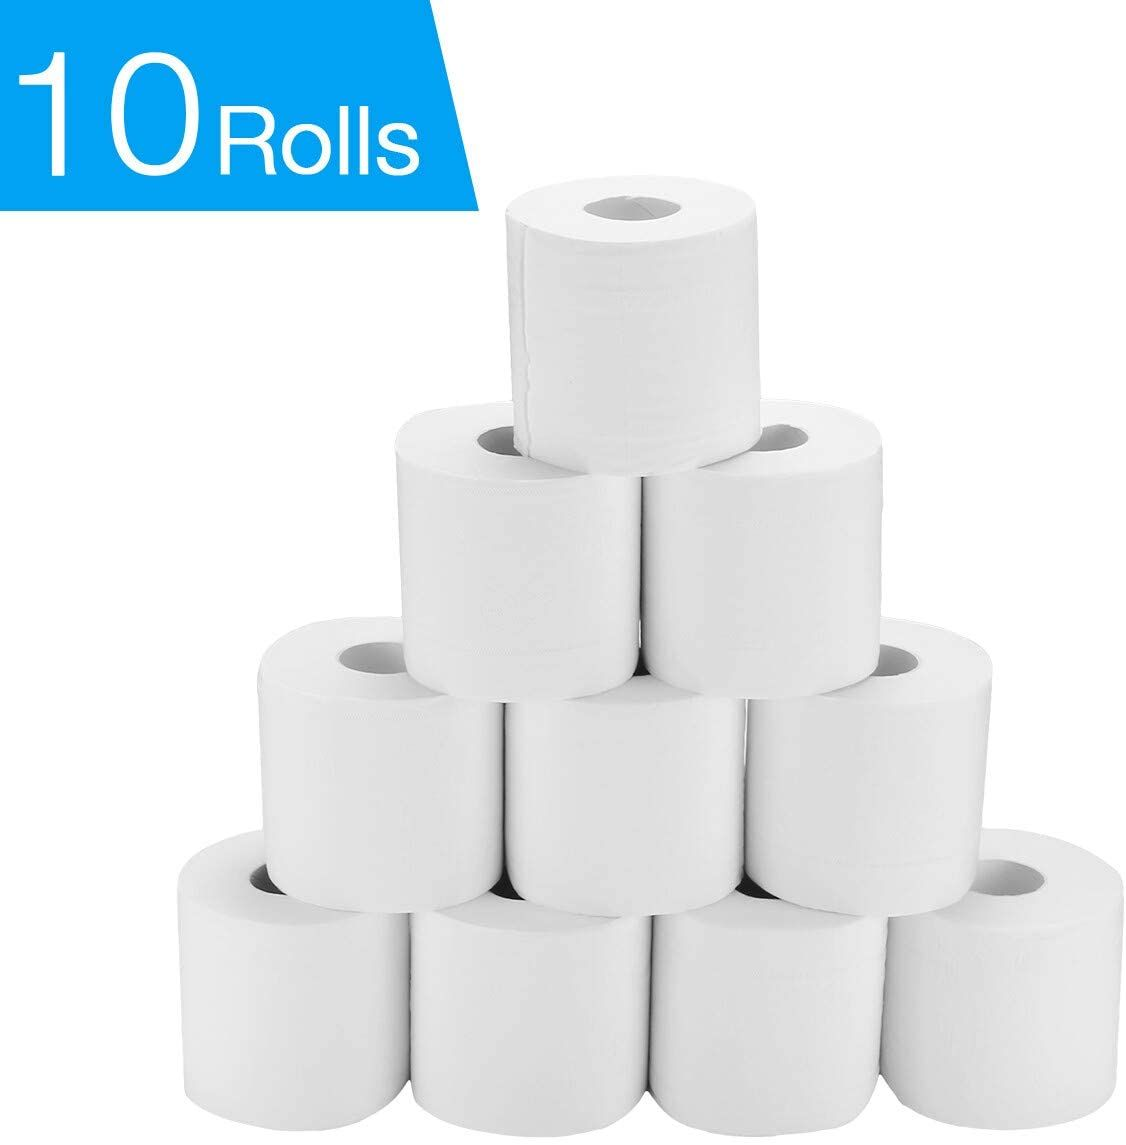 Toilet Paper 19 99 10 Rolls Toilet Paper 4 Ply Embossed Toilet Paper Rolls Soft Jumbo Rolls Commercial Individually Wrap In 2020 Toilet Paper Roll Paper Paper Rolls